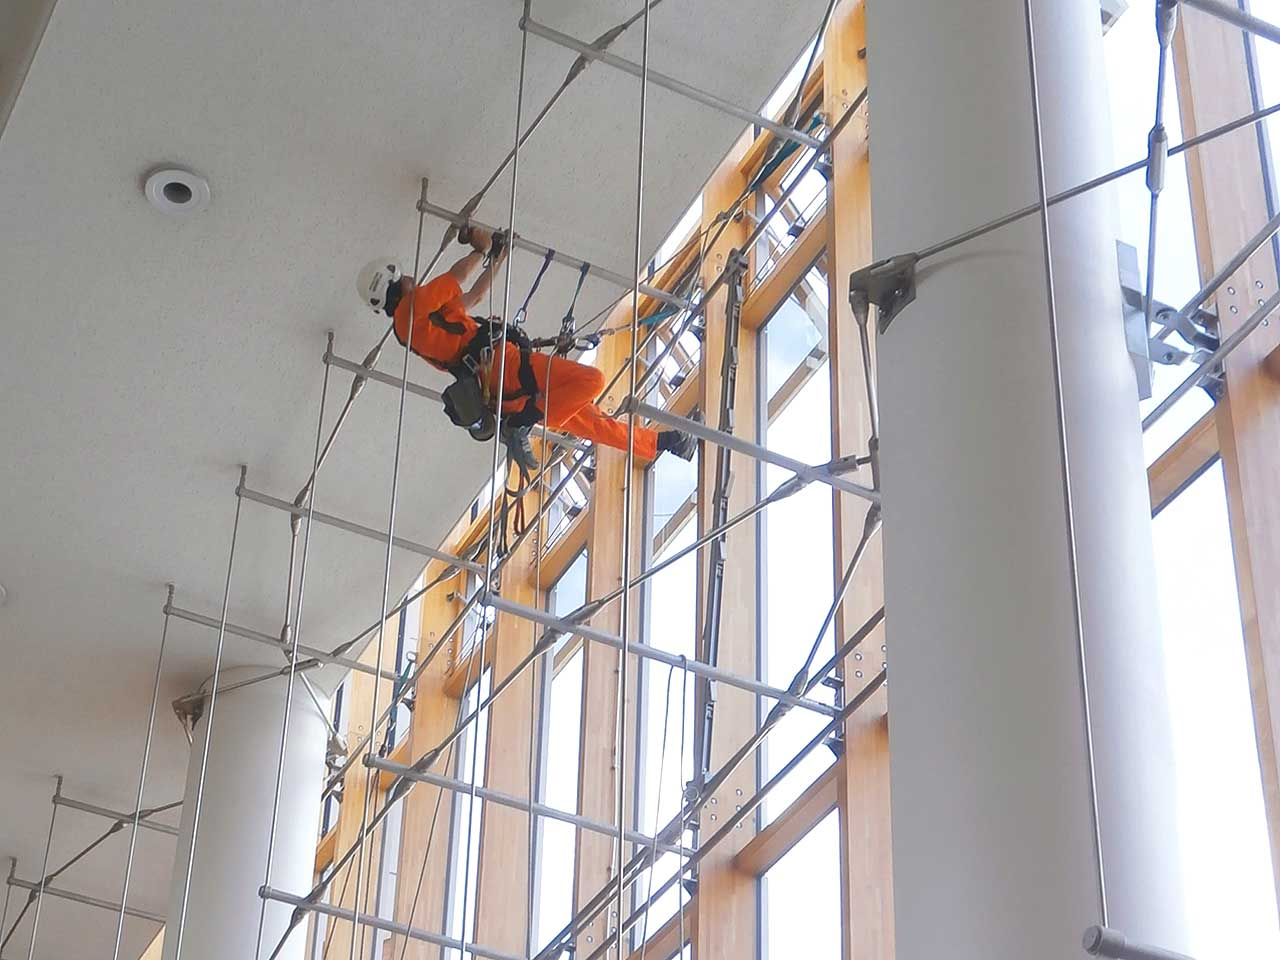 Inspection of the glass curtain wall by rope access